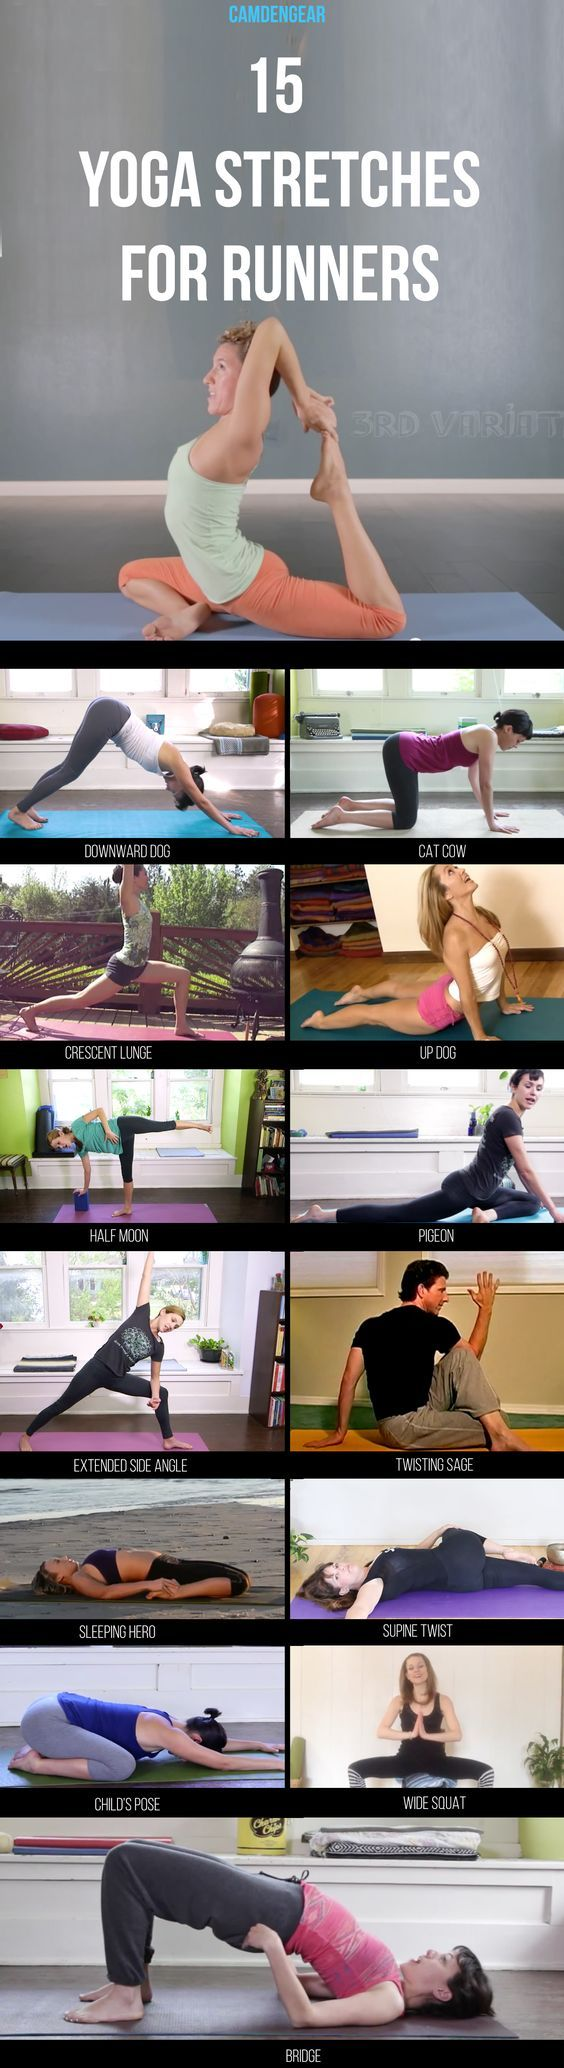 Here are 14 yoga stretches. These poses help you pre and post-run to get those limbs flexible and reduce the chance on injury...: